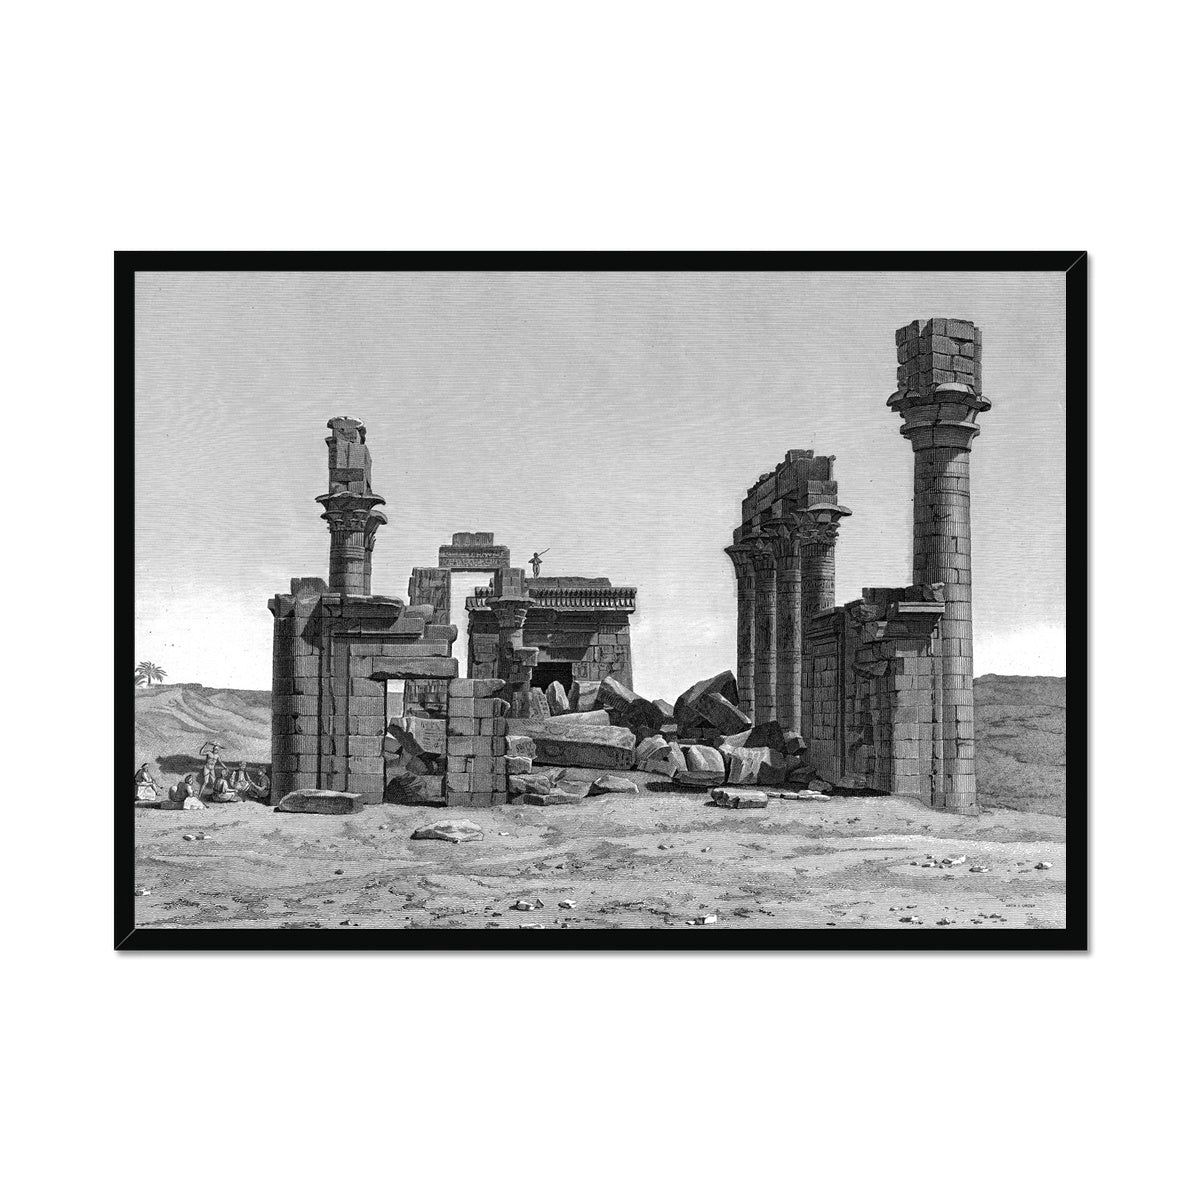 The Temple of Hermonthis Ruins 2 - Armant Egypt -  Framed Print